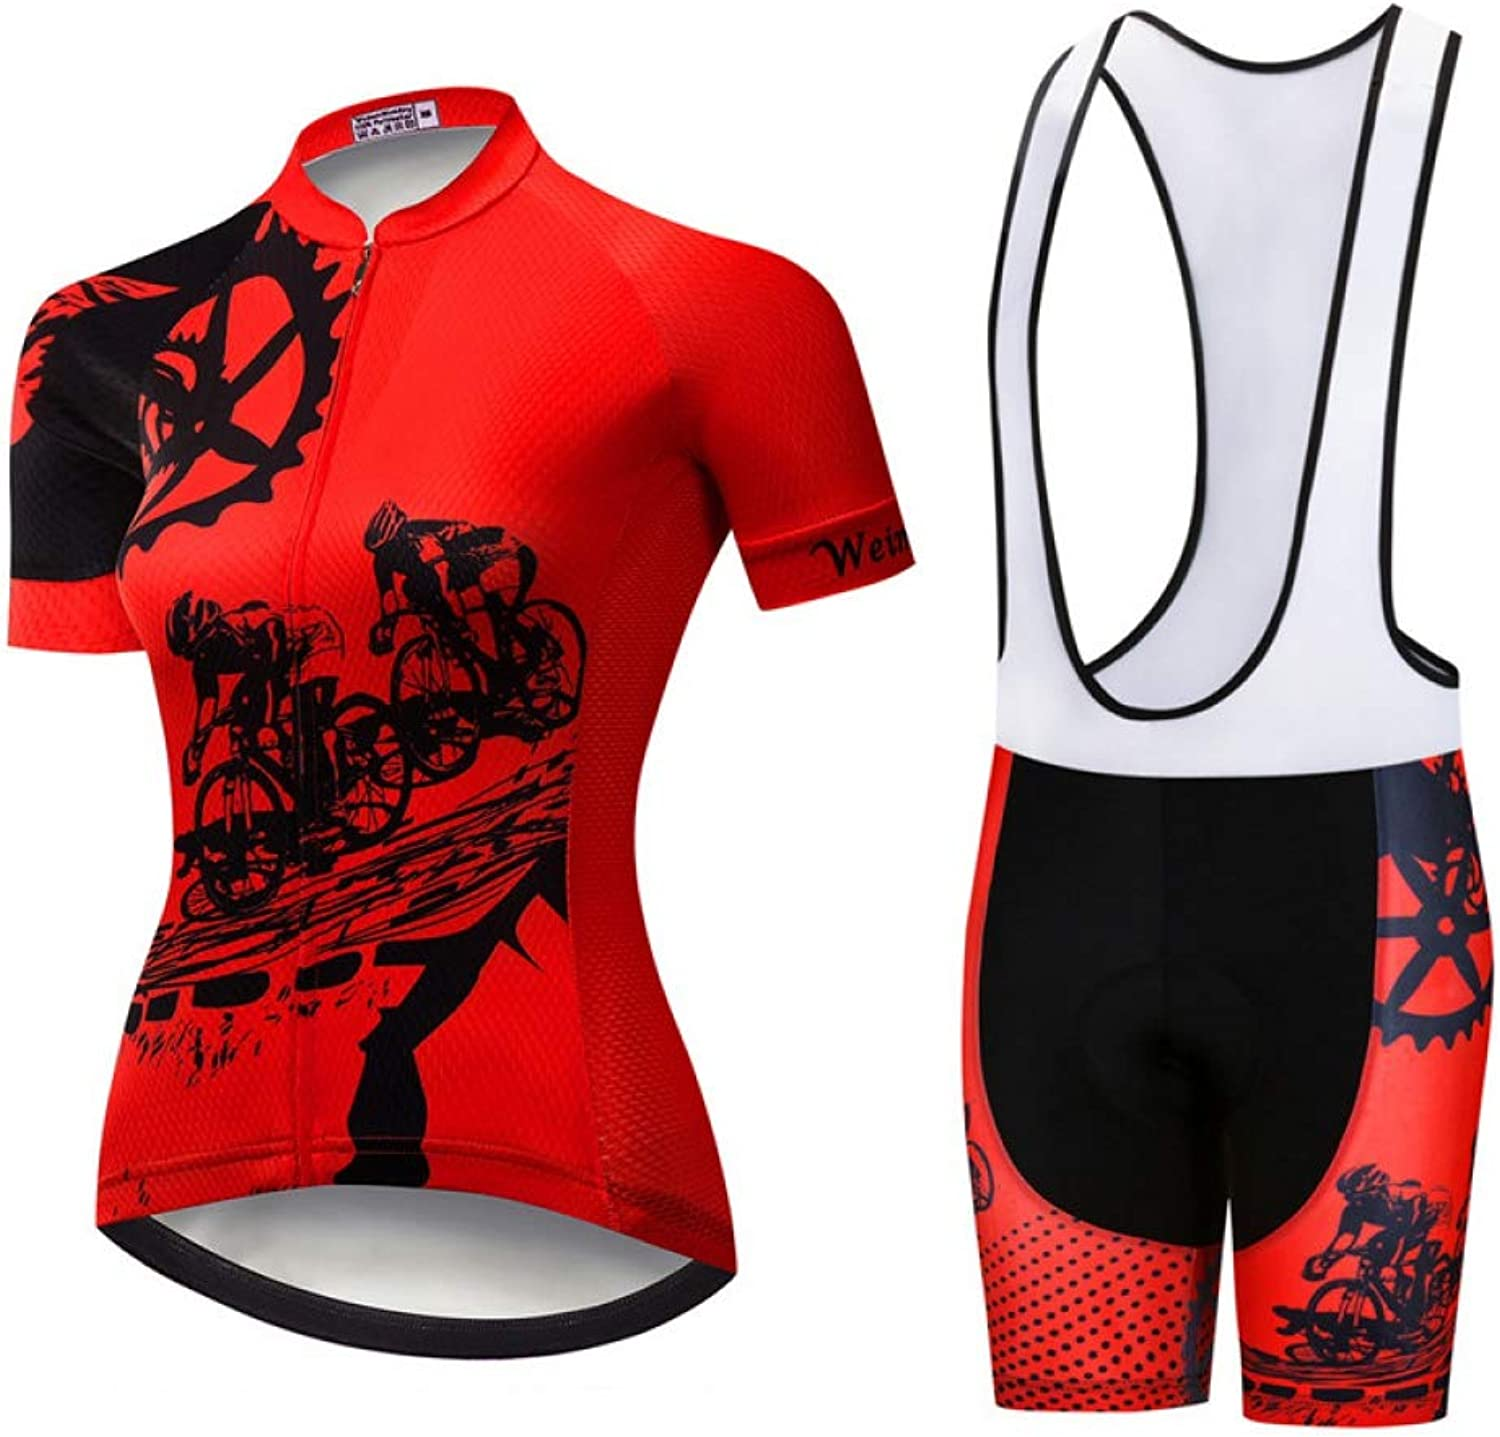 Rzxkad Cycling Clothing Women Summer Short Sleeve Cycling Jersey Set Pro Team Bike Clothing Uniform Bicycle Wear